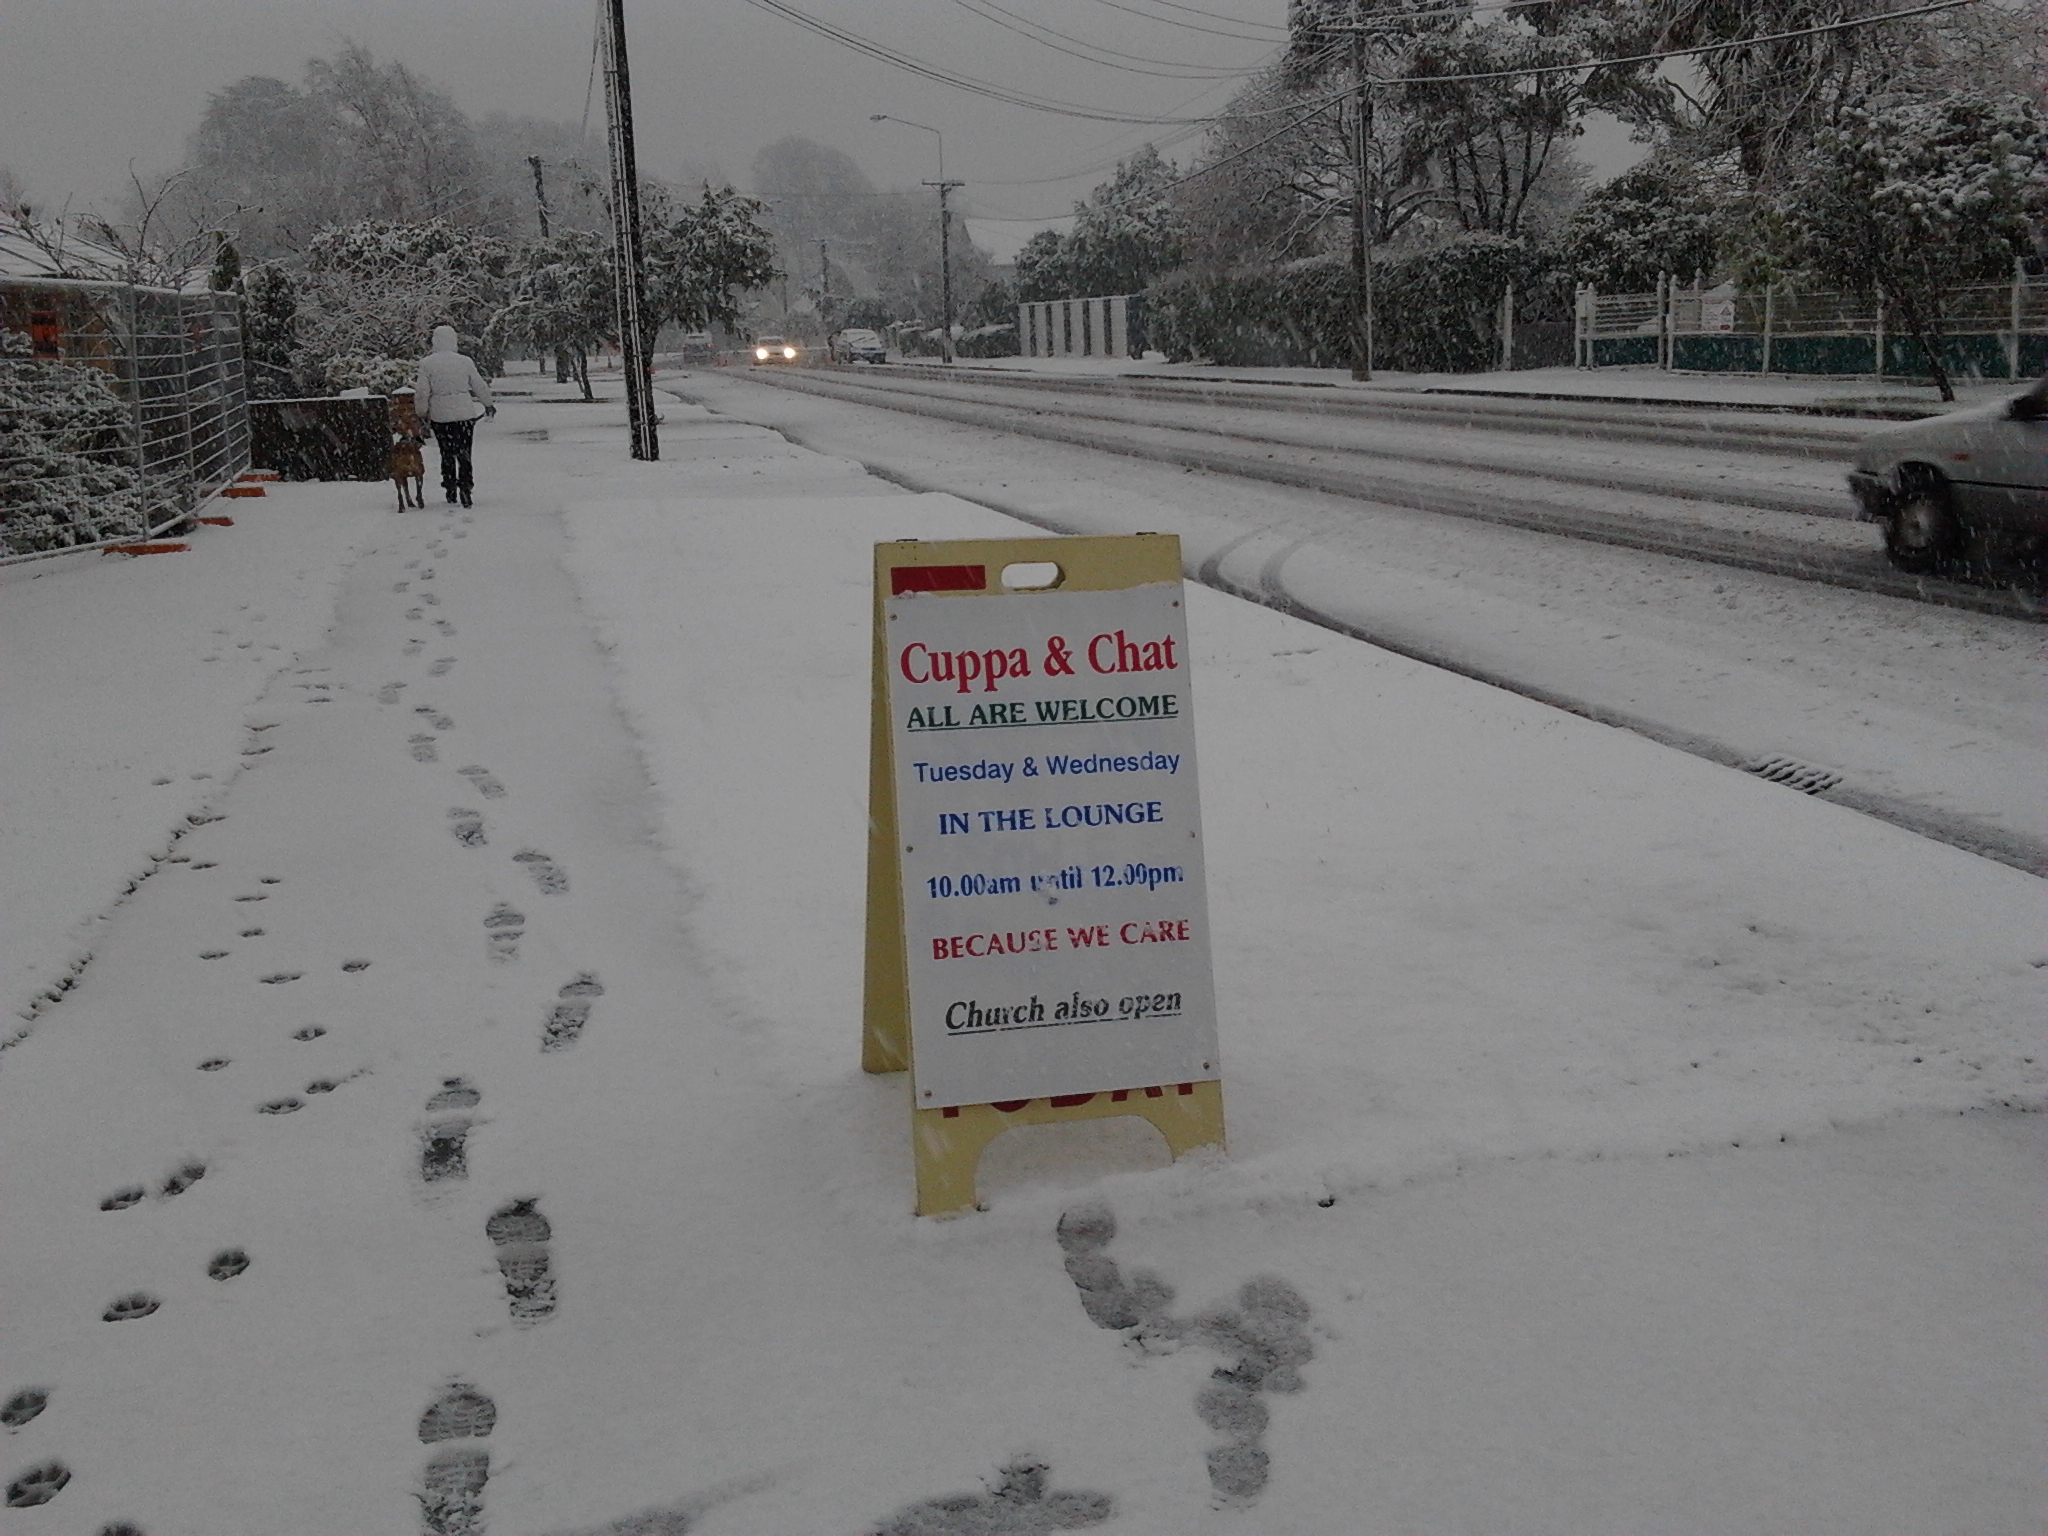 Footsteps and Open sign in snow outside church